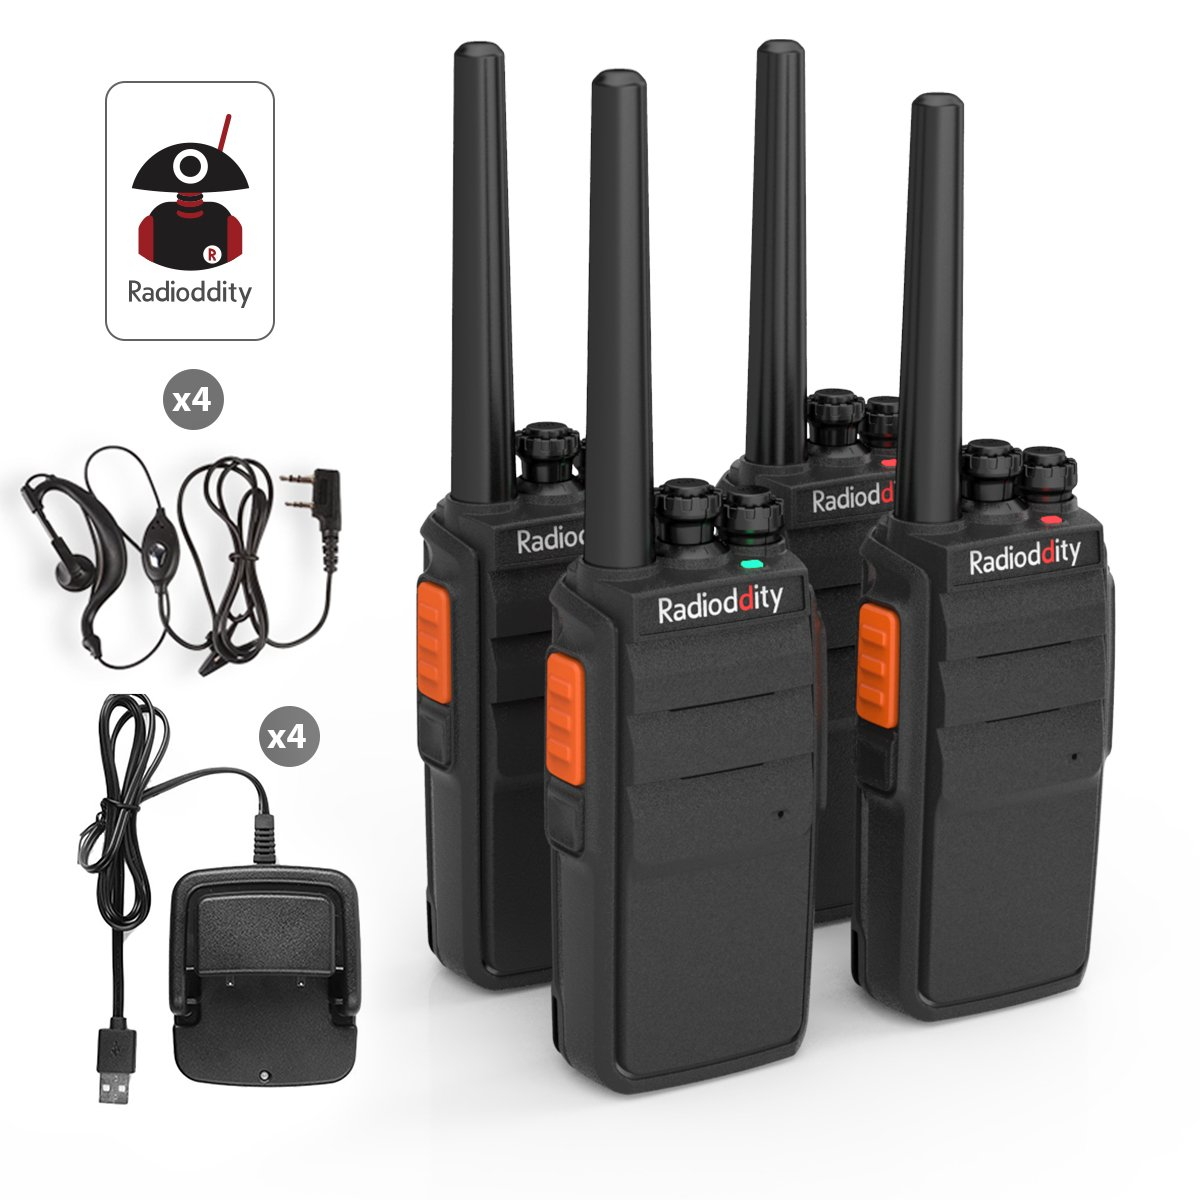 Radioddity R2 Two Way Radio with 16 Channels,96 Hours Super Long Standby VOX Scrambler,1100mAh Li-ion Battery Granular Sensation Walkie Talkie with USB Charger Earpiece Pack of 4